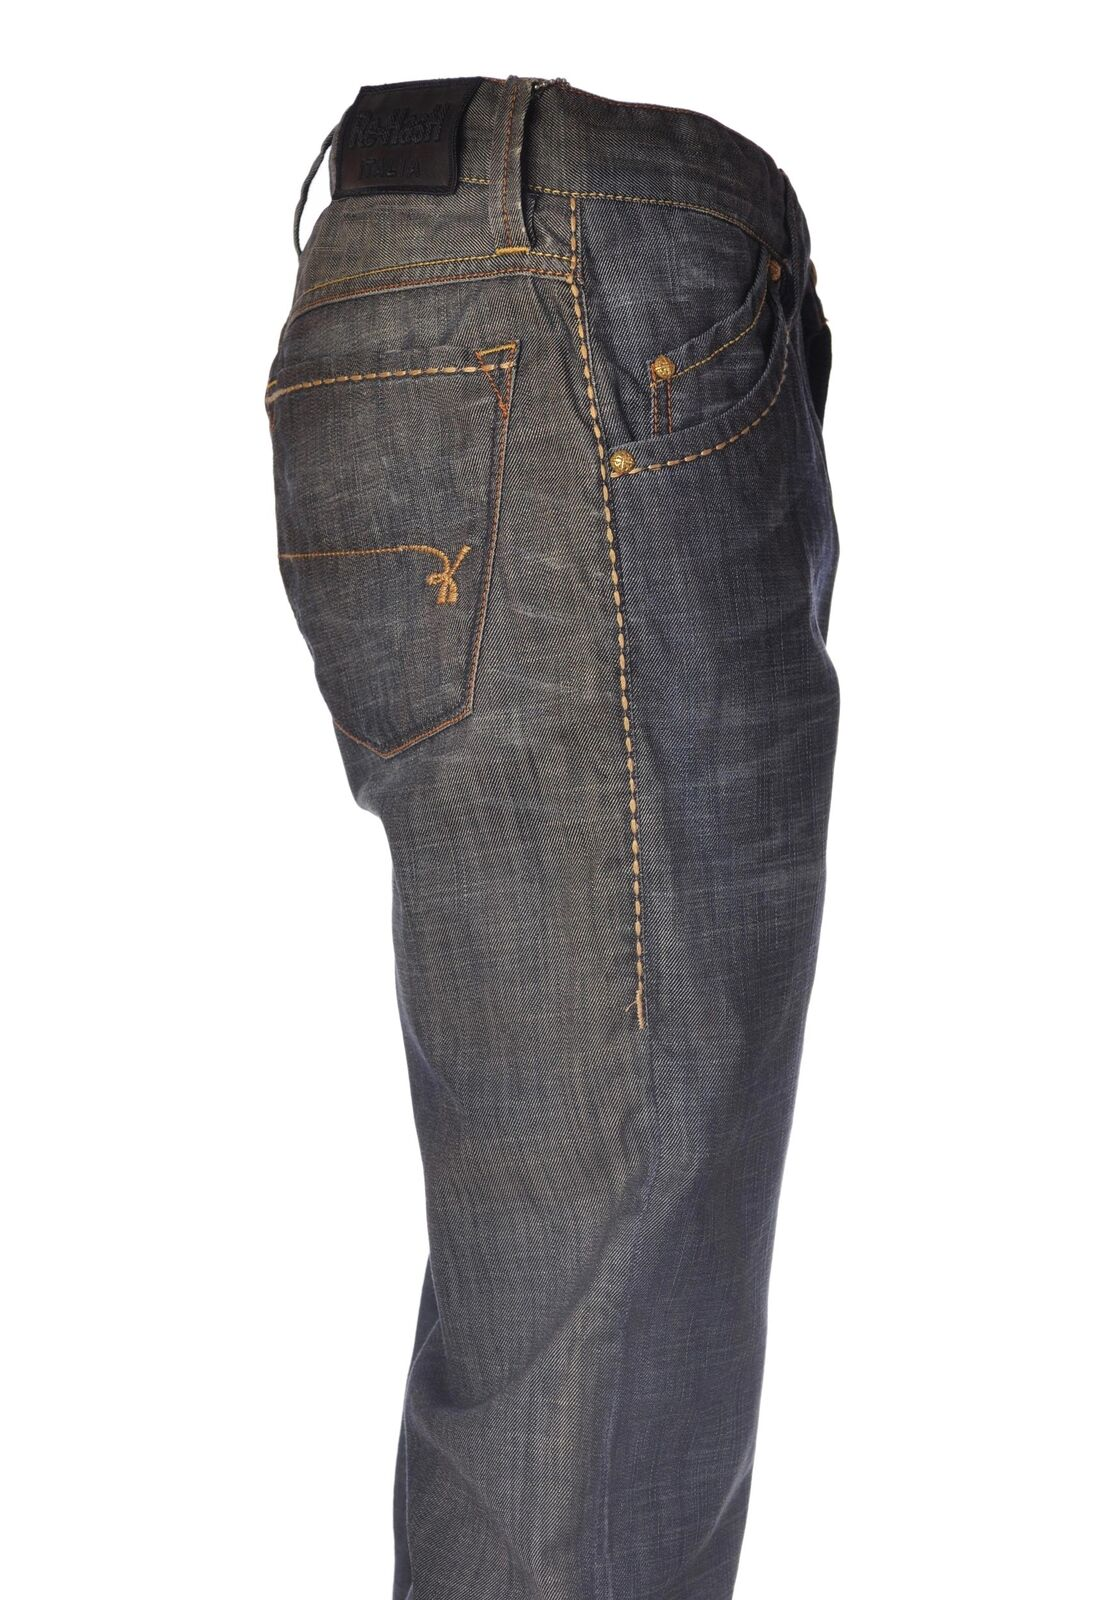 Re-Hash - Jeans-Pantaloni - men - blue - 4499815M185522